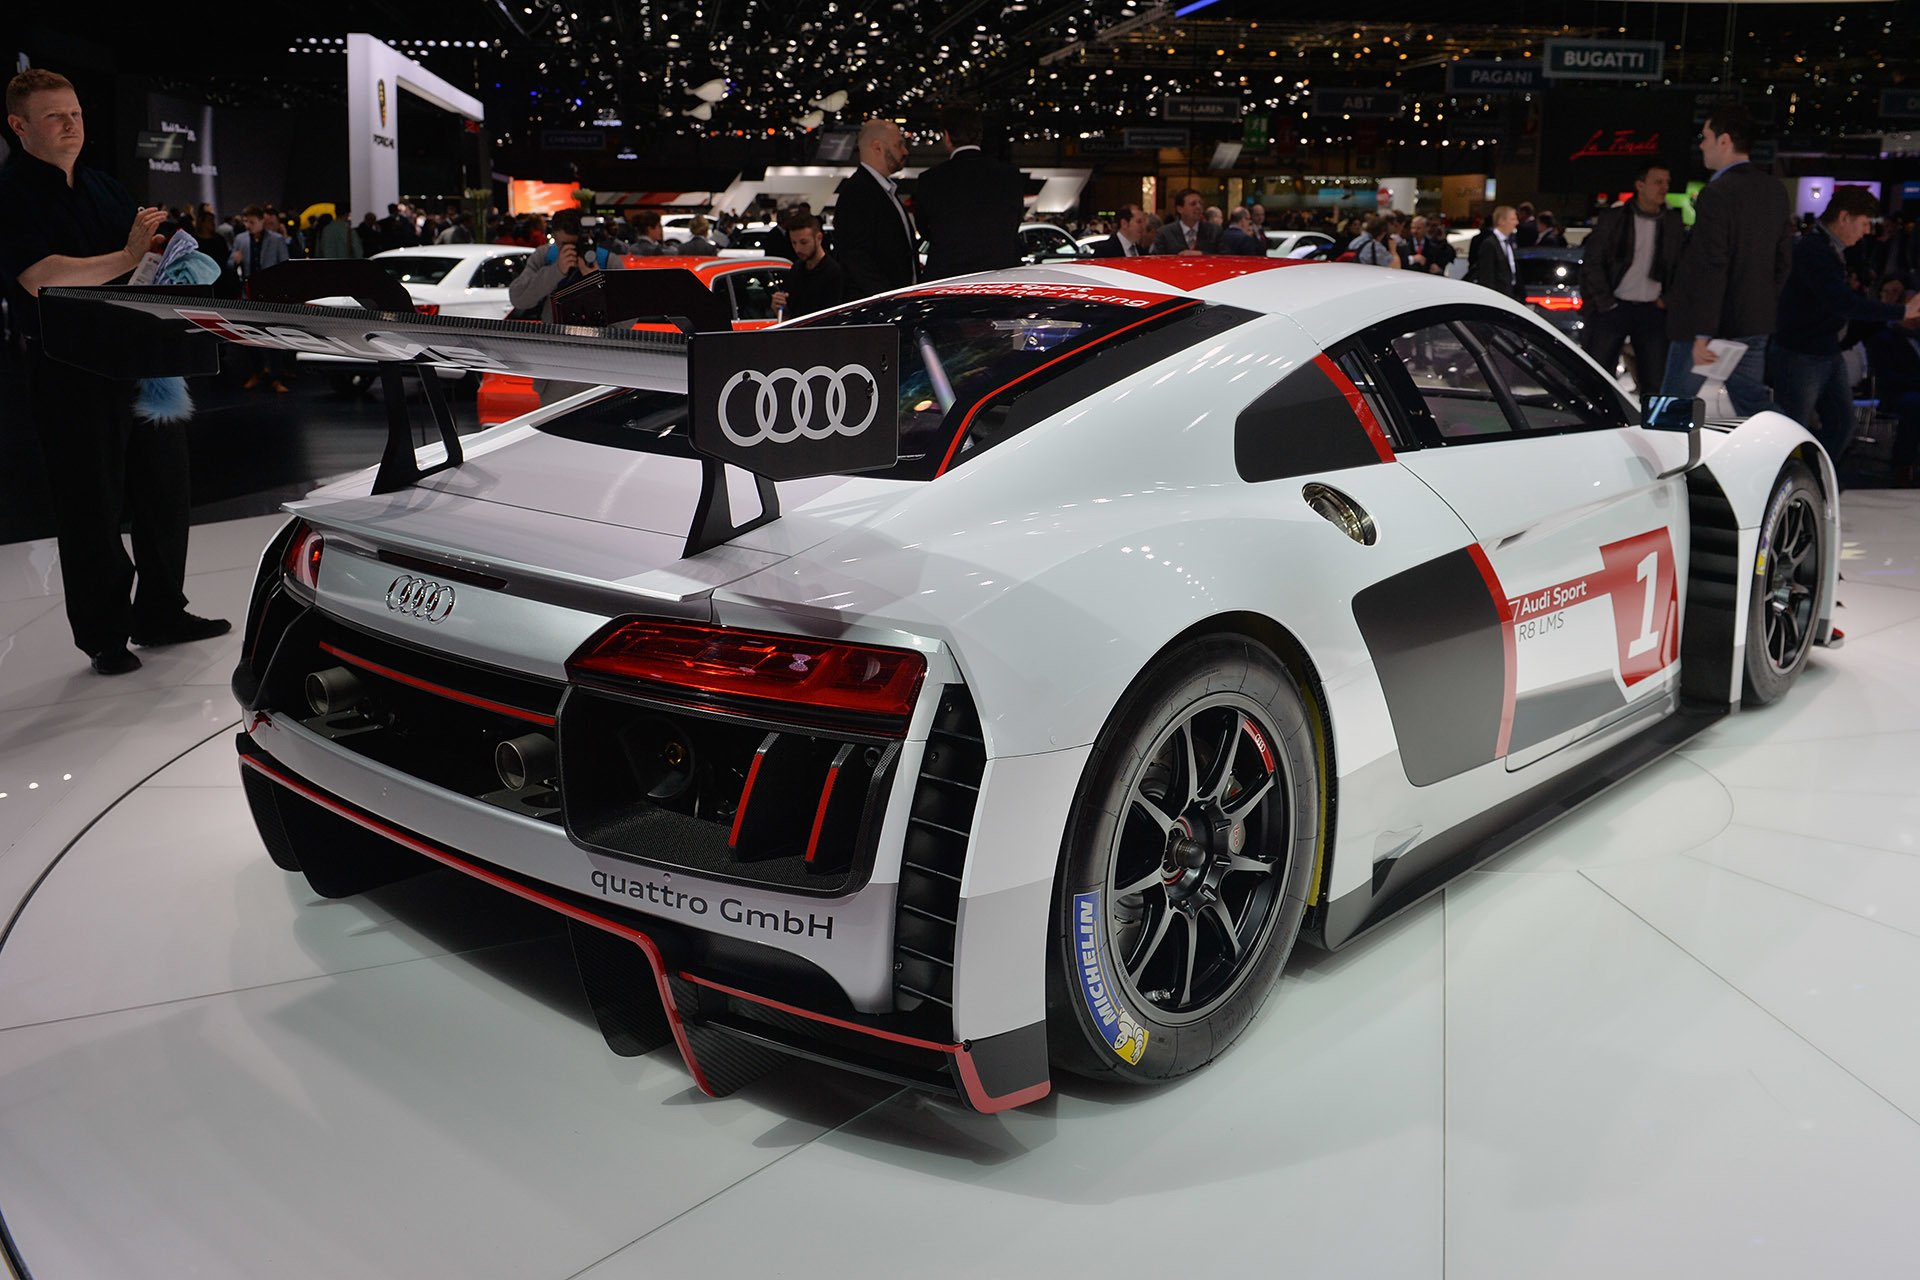 All In One Wallpapers The Audi R8 V10 R8 V10 Plus R8 Electric